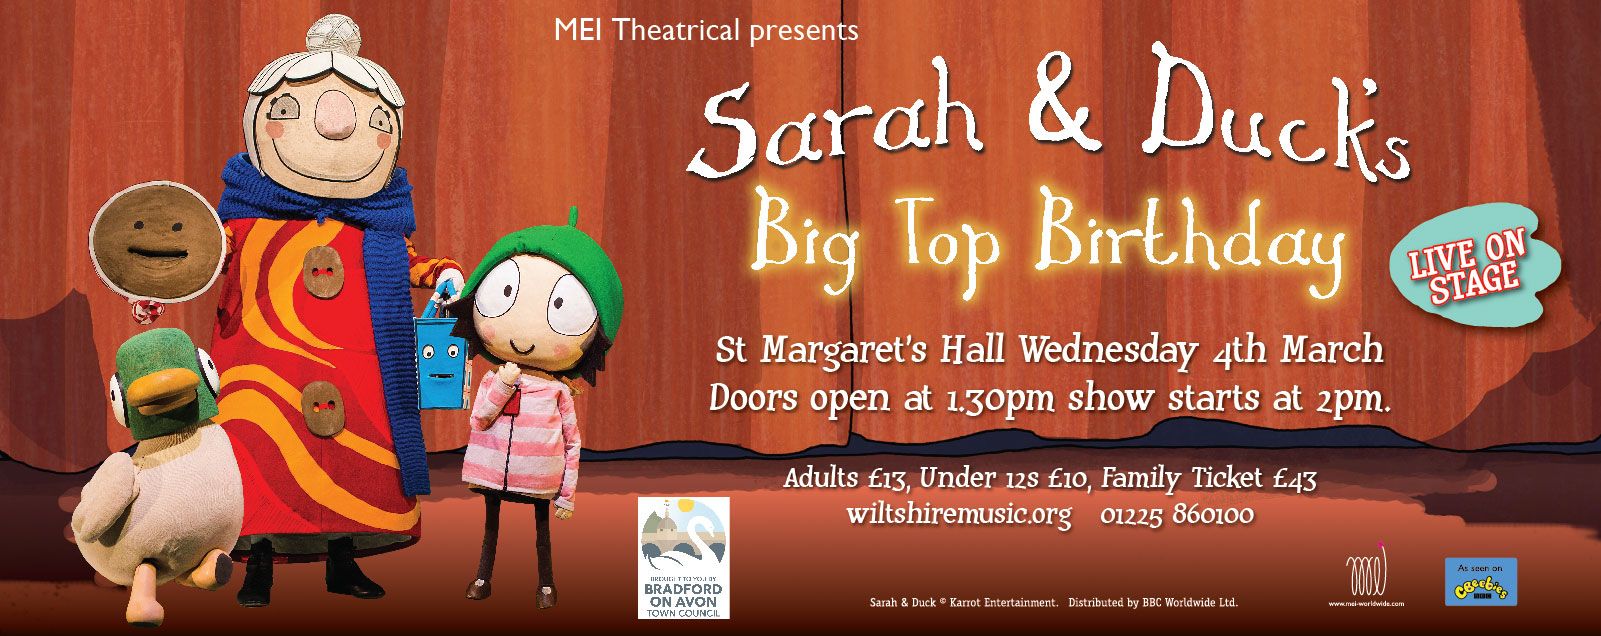 Sarah & Duck, Big Top Birthday.